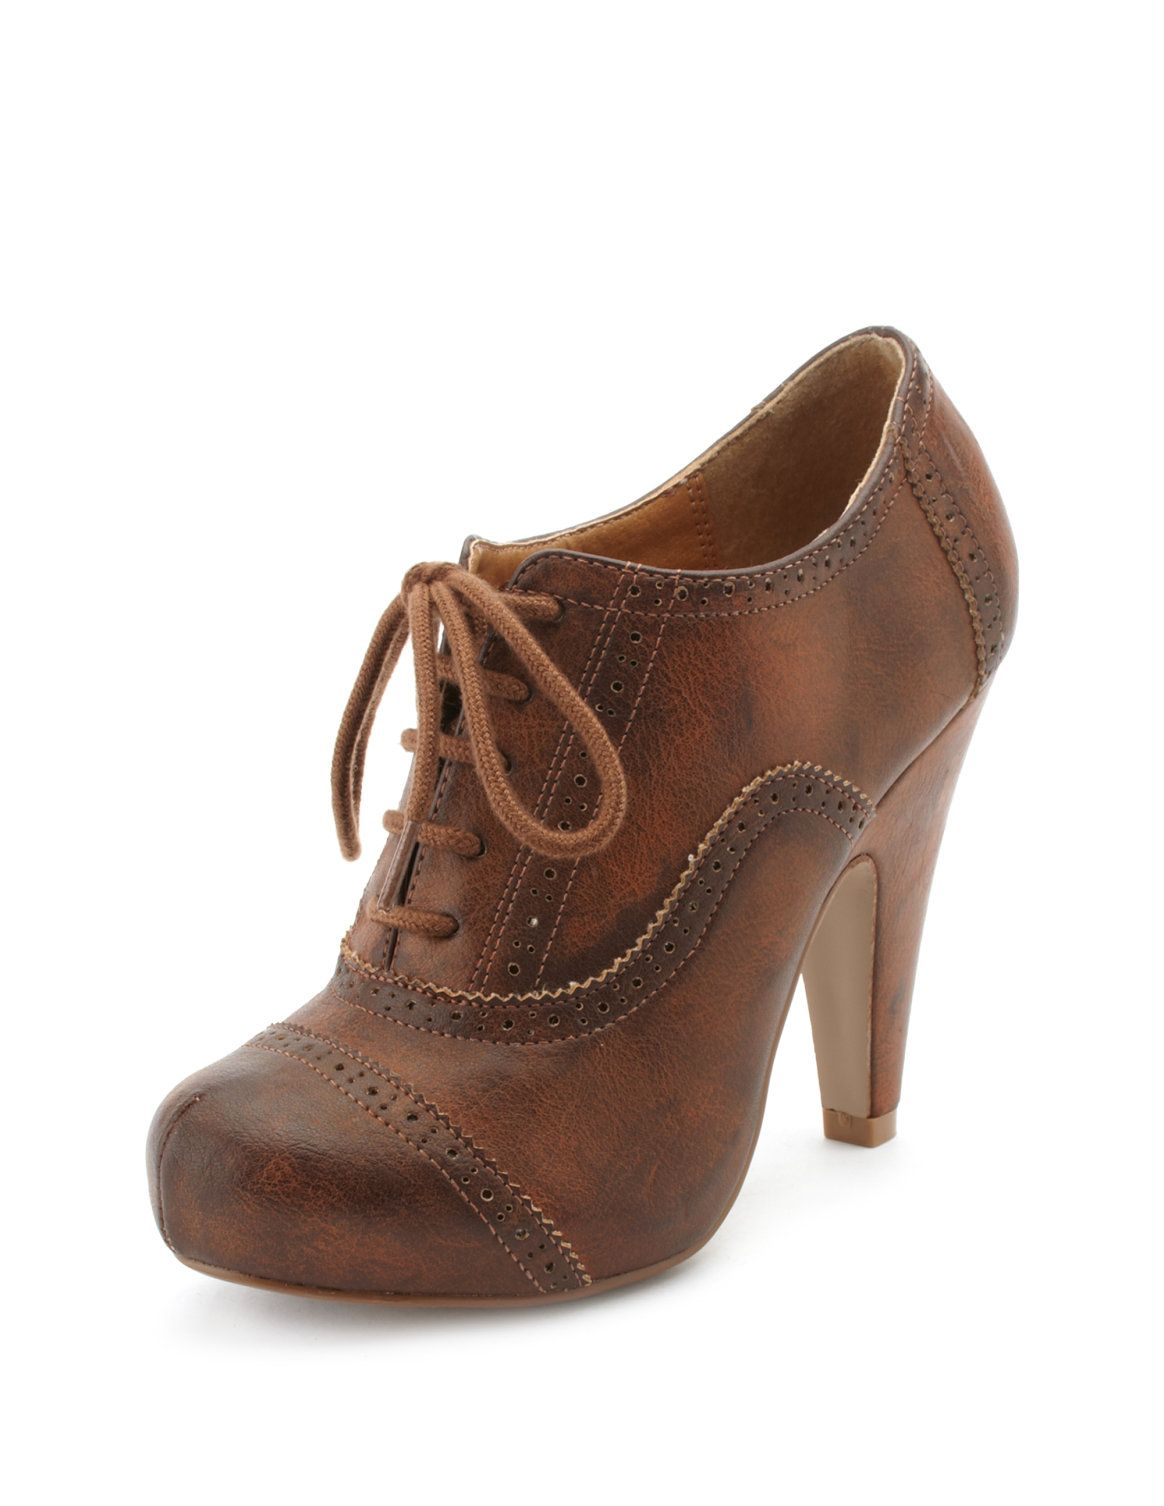 Pin By Gabriela Pg On My Style Pinboard Oxford Heels Heels Shoe Boots